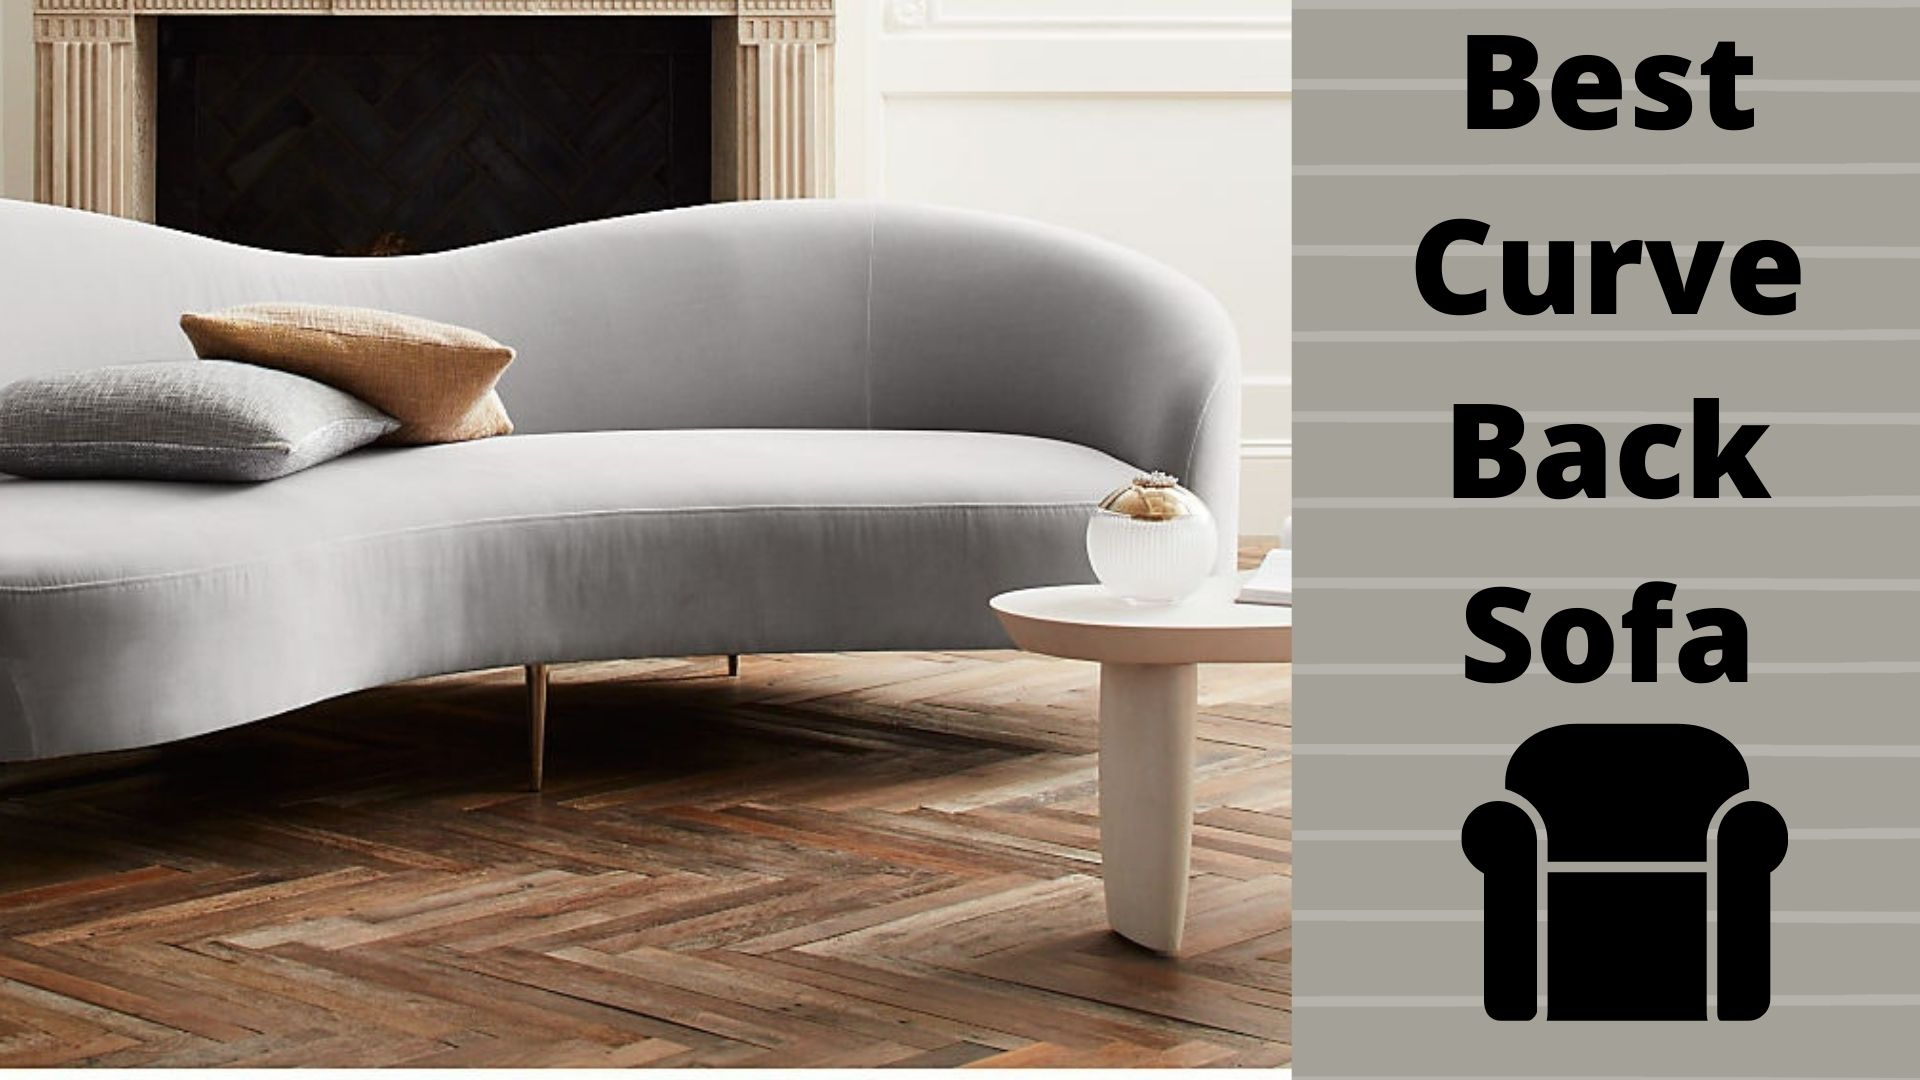 Best Curve Back Sofa